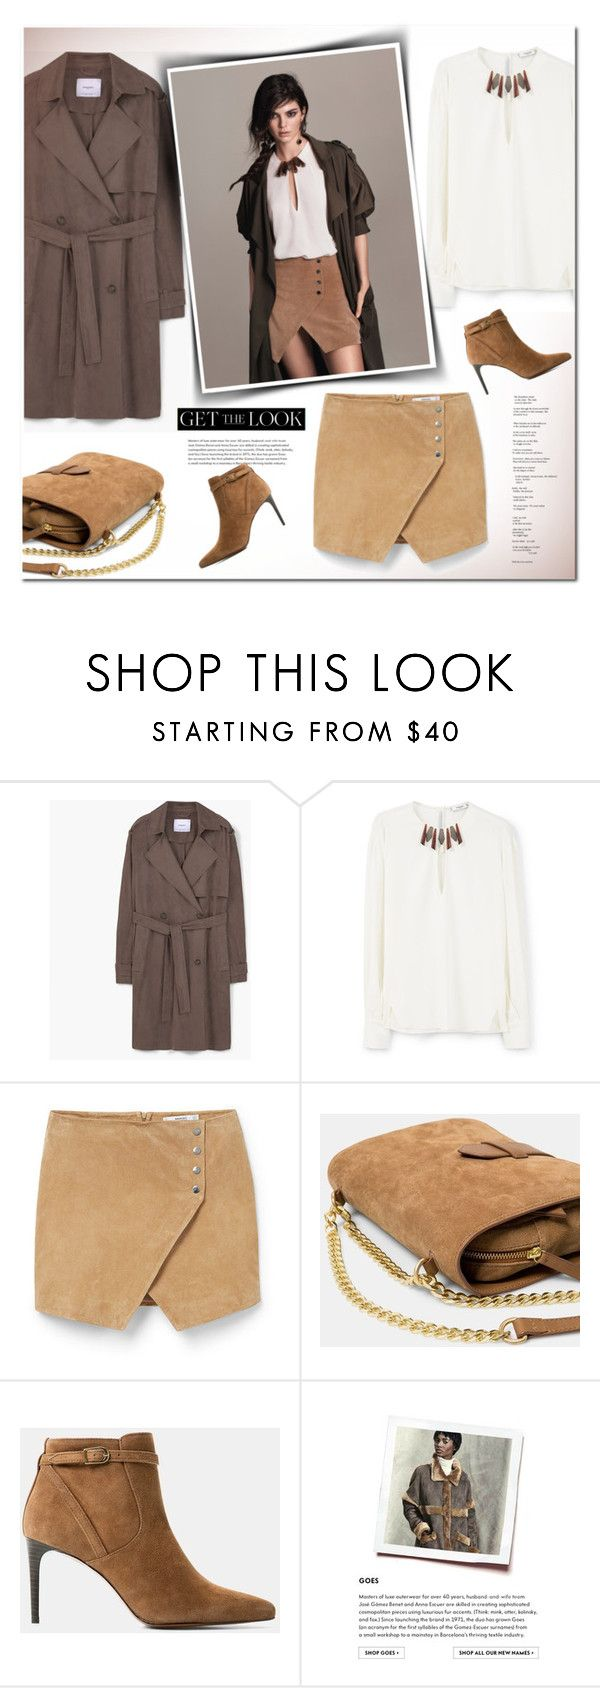 """""""get the look - jenner for mango"""" by drn57 ❤ liked on Polyvore featuring MANGO, women's clothing, women, female, woman, misses, juniors, mango, suede and trenchcoat"""